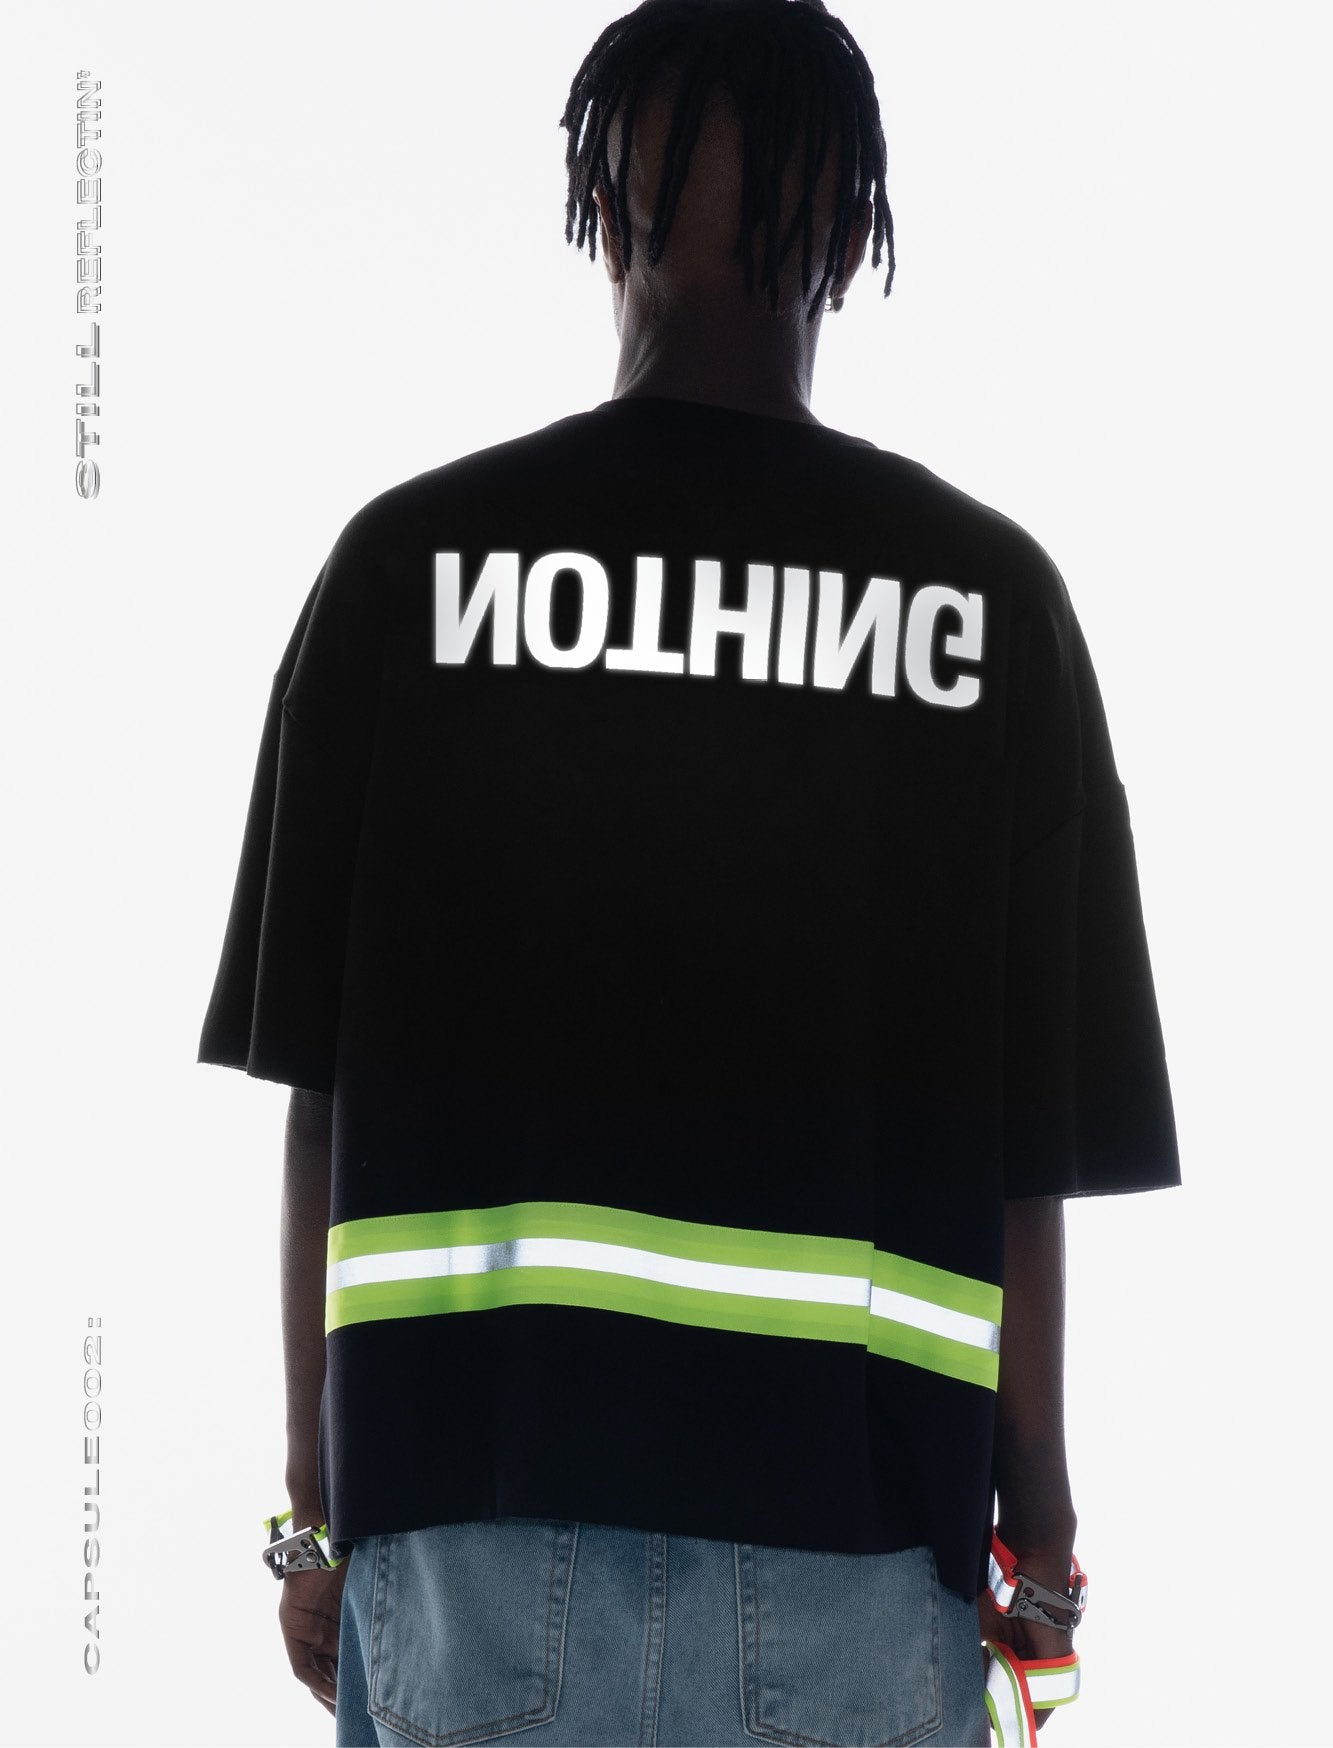 OVERSIZED T_SHIRT //REFLECTIVE STRAP  *SPECIAL EDITION [1/1] part. II